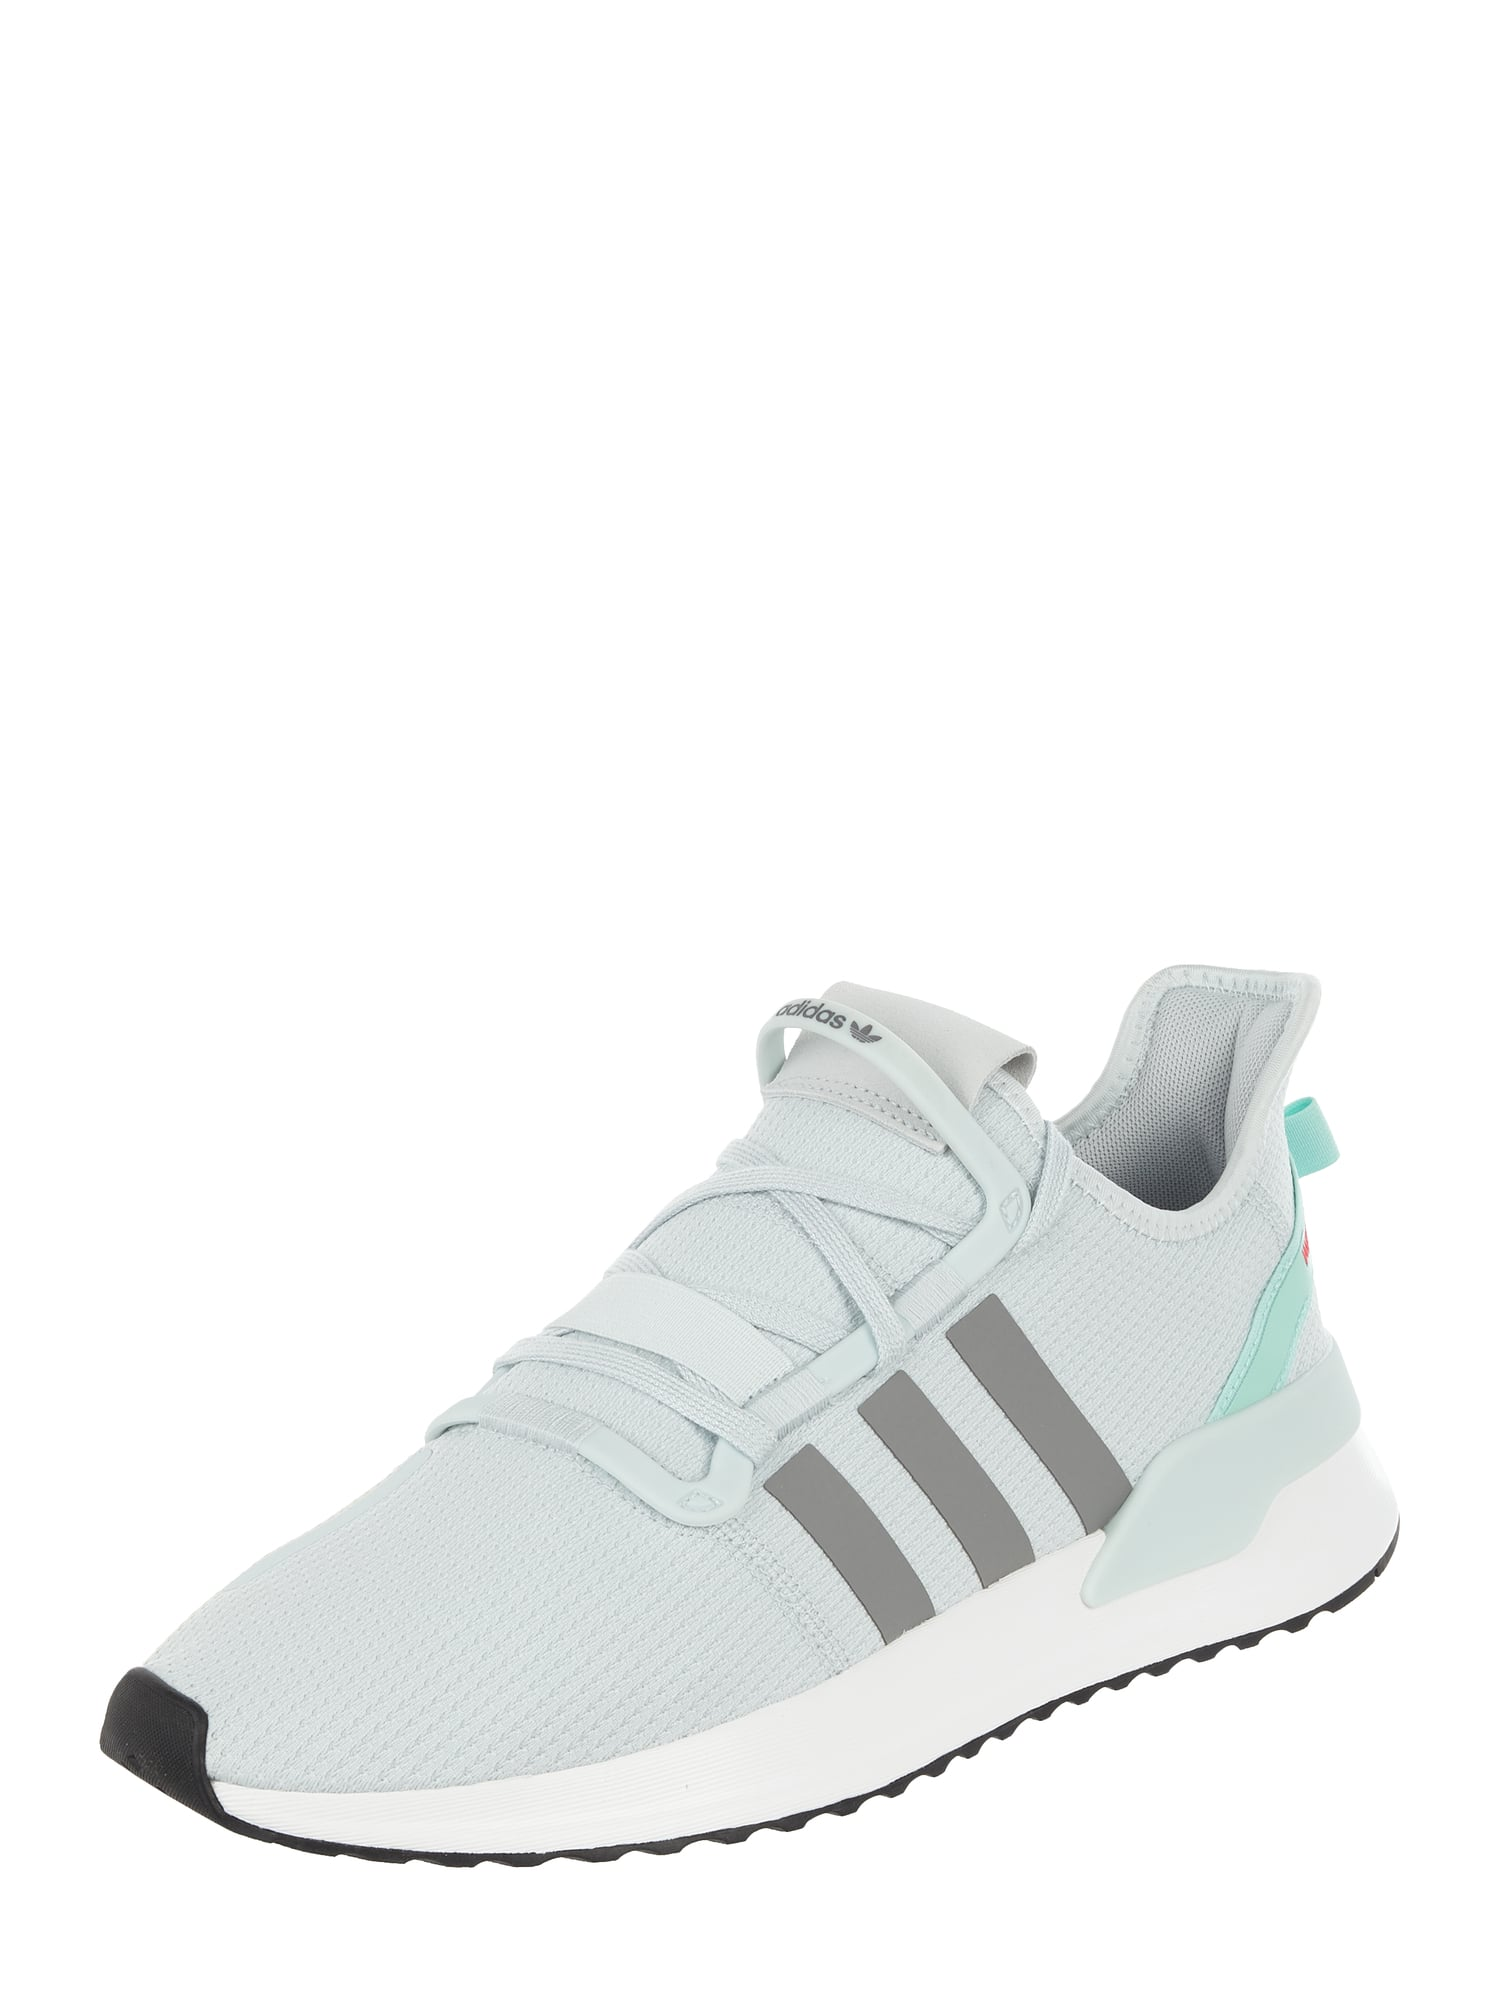 path Adidas In Sneaker Originals Türkis Aus Blau 'u Mesh Run